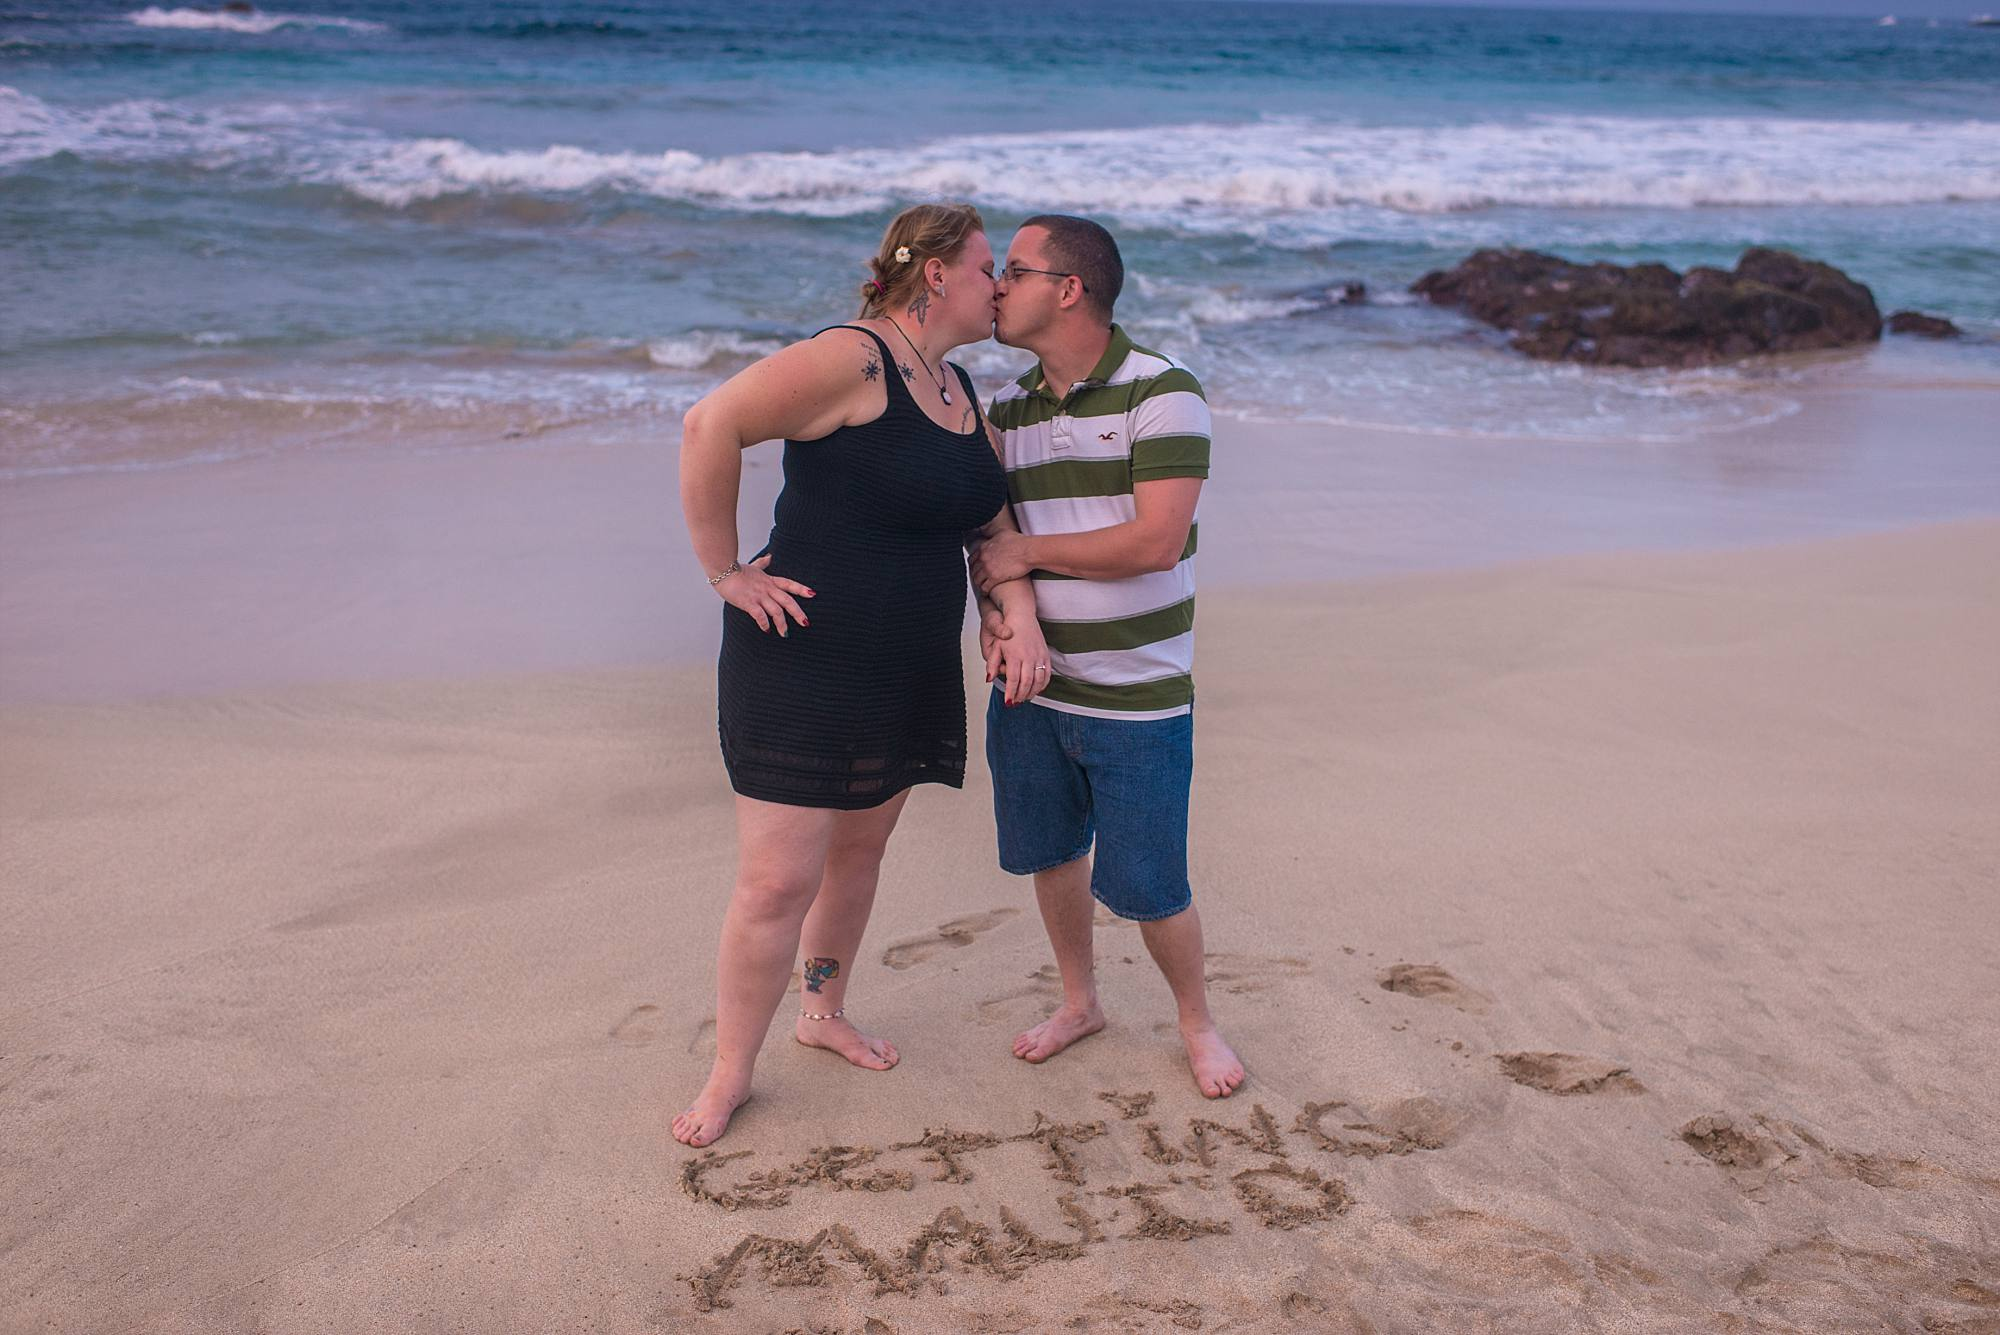 Getting Mauid dug into the sand, couple kissing behind it